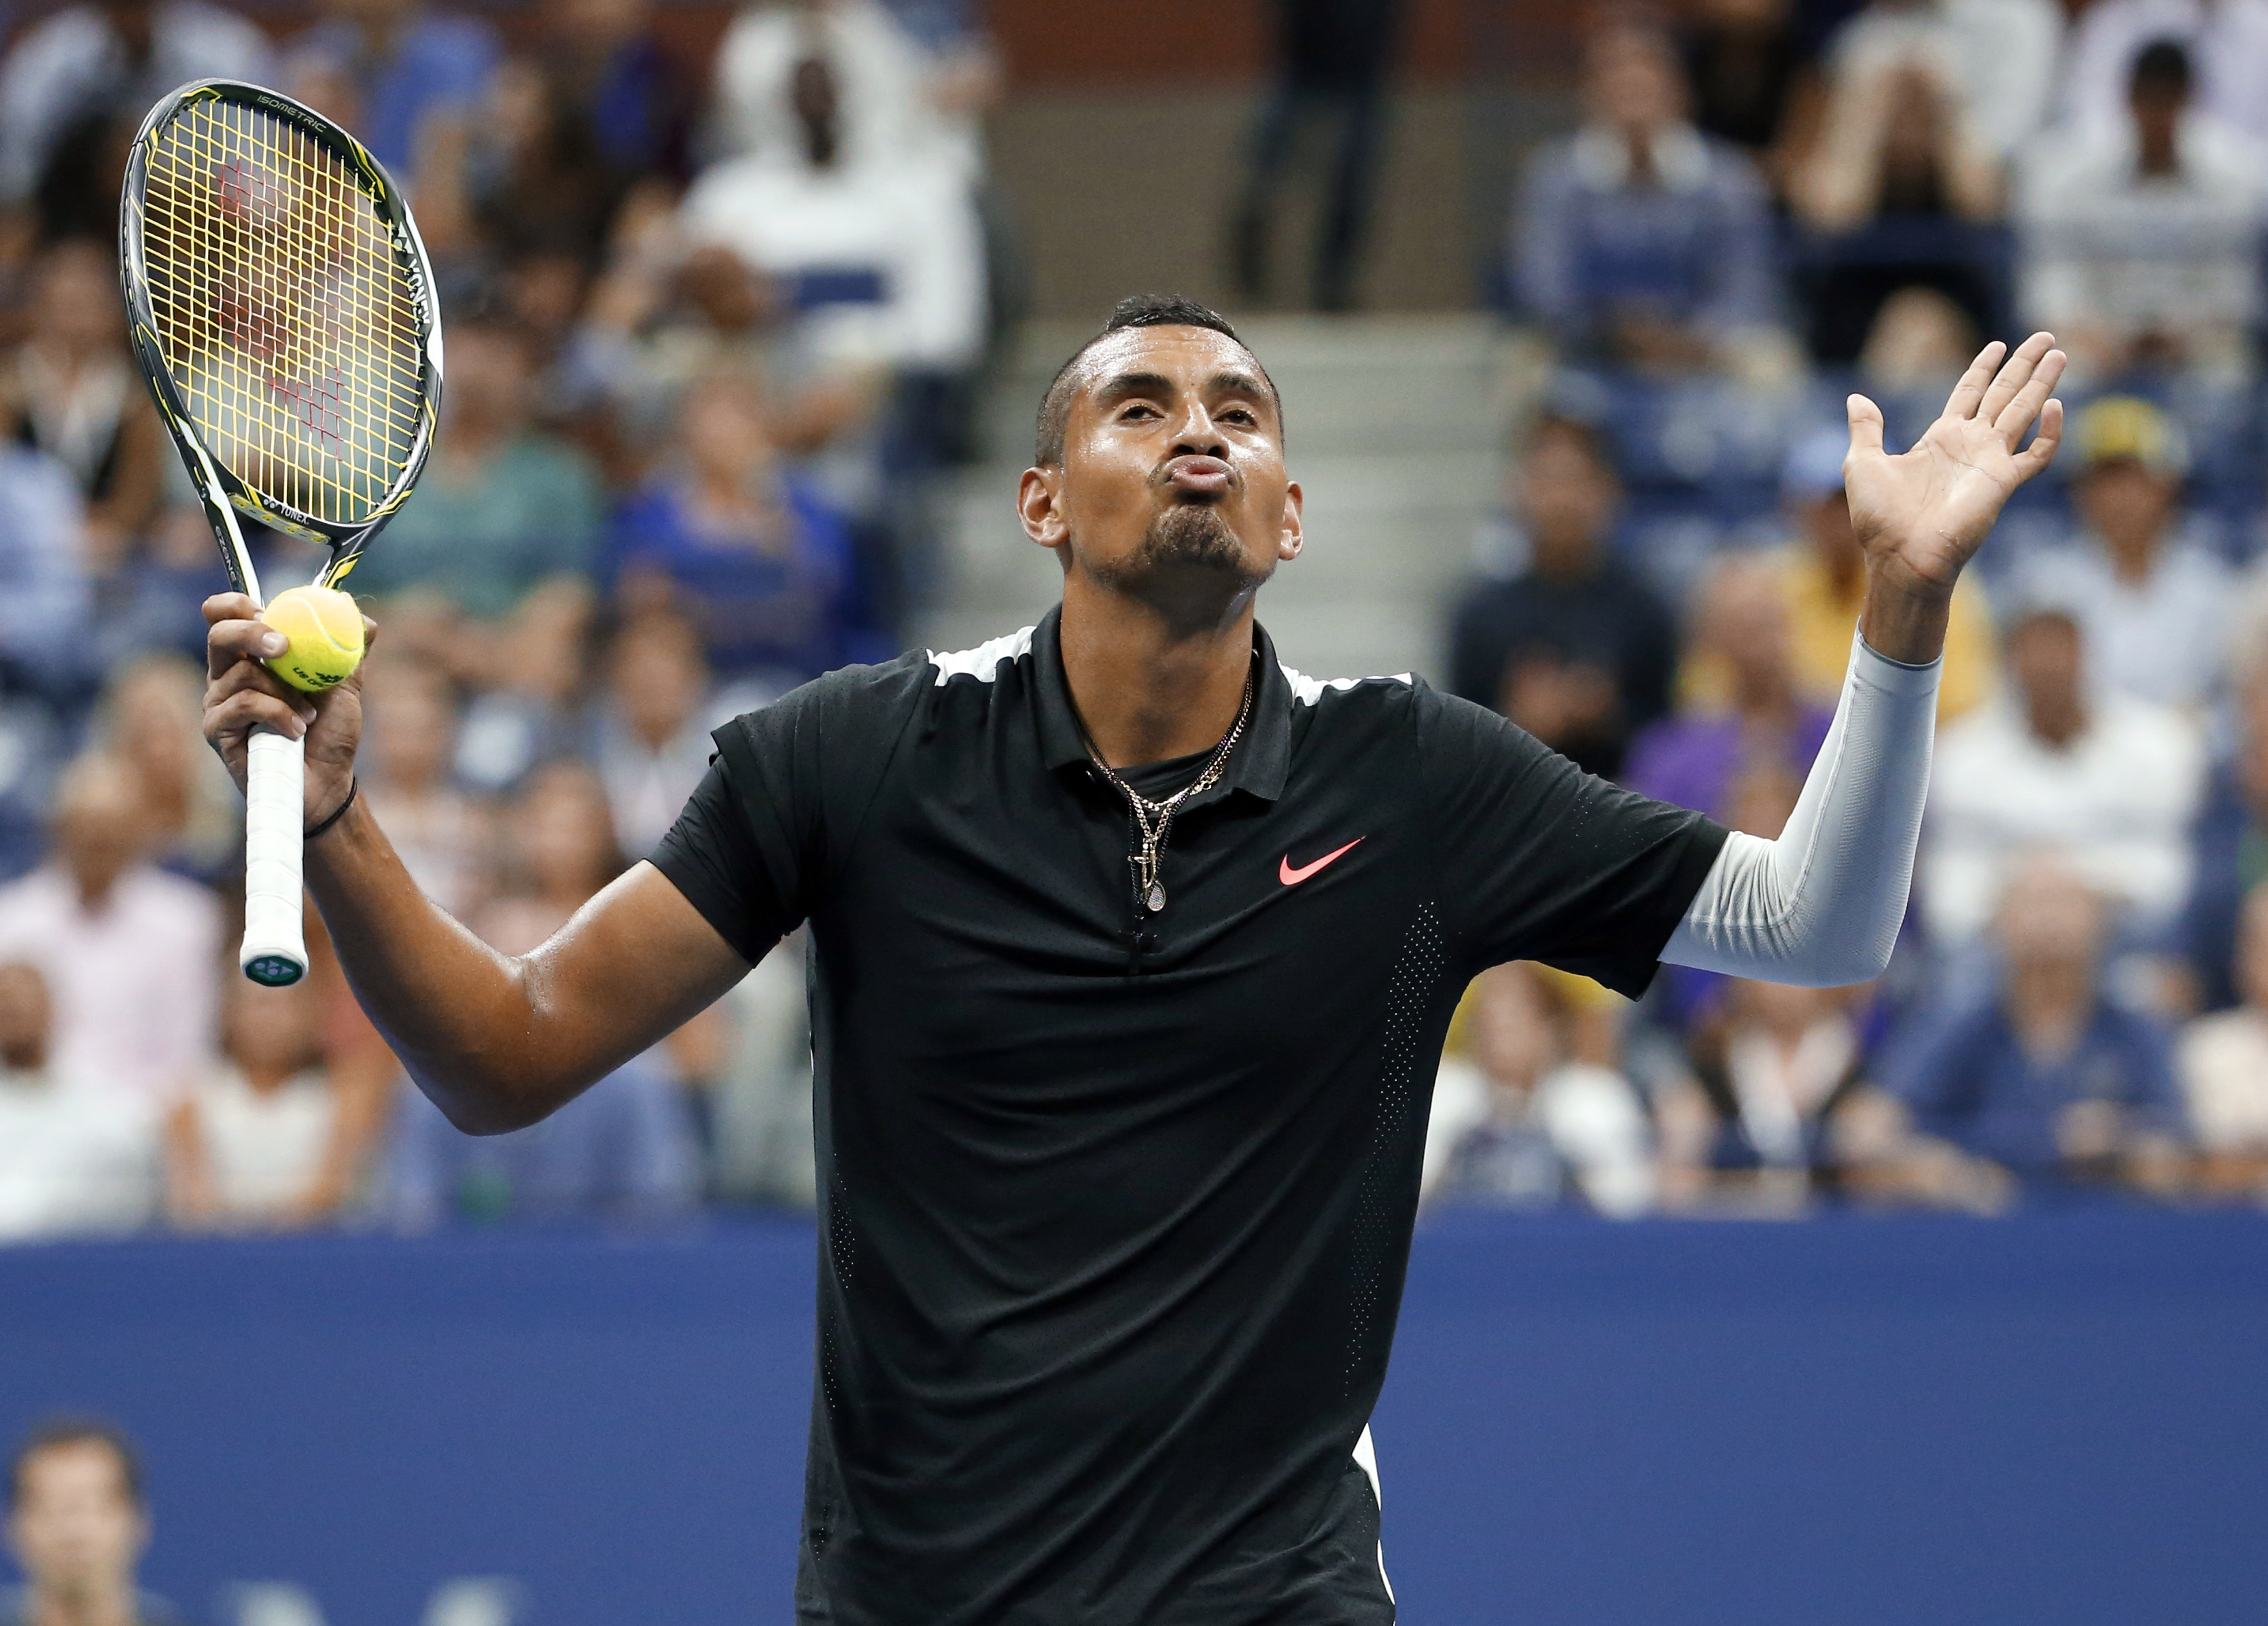 Nick Kyrgios, of Australia, reacts between points against Andy Murray, of Britain, during the first round of the U.S. Open tennis tournament in New York, Tuesday, Sept. 1, 2015. (AP Photo/Julio Cortez)